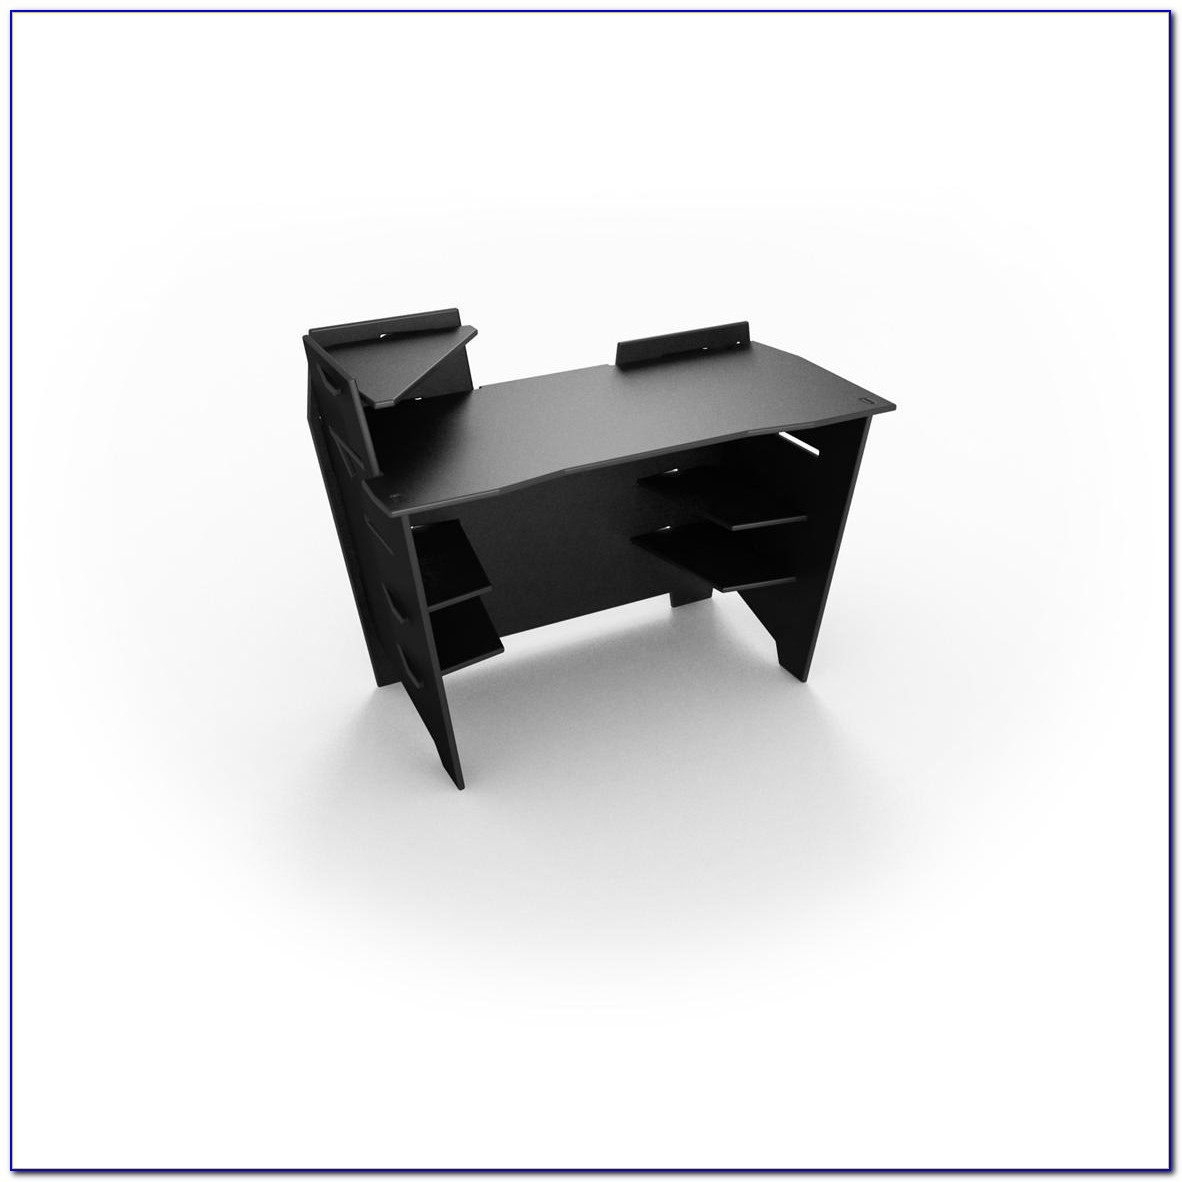 Desk Shelf For Computer Monitor